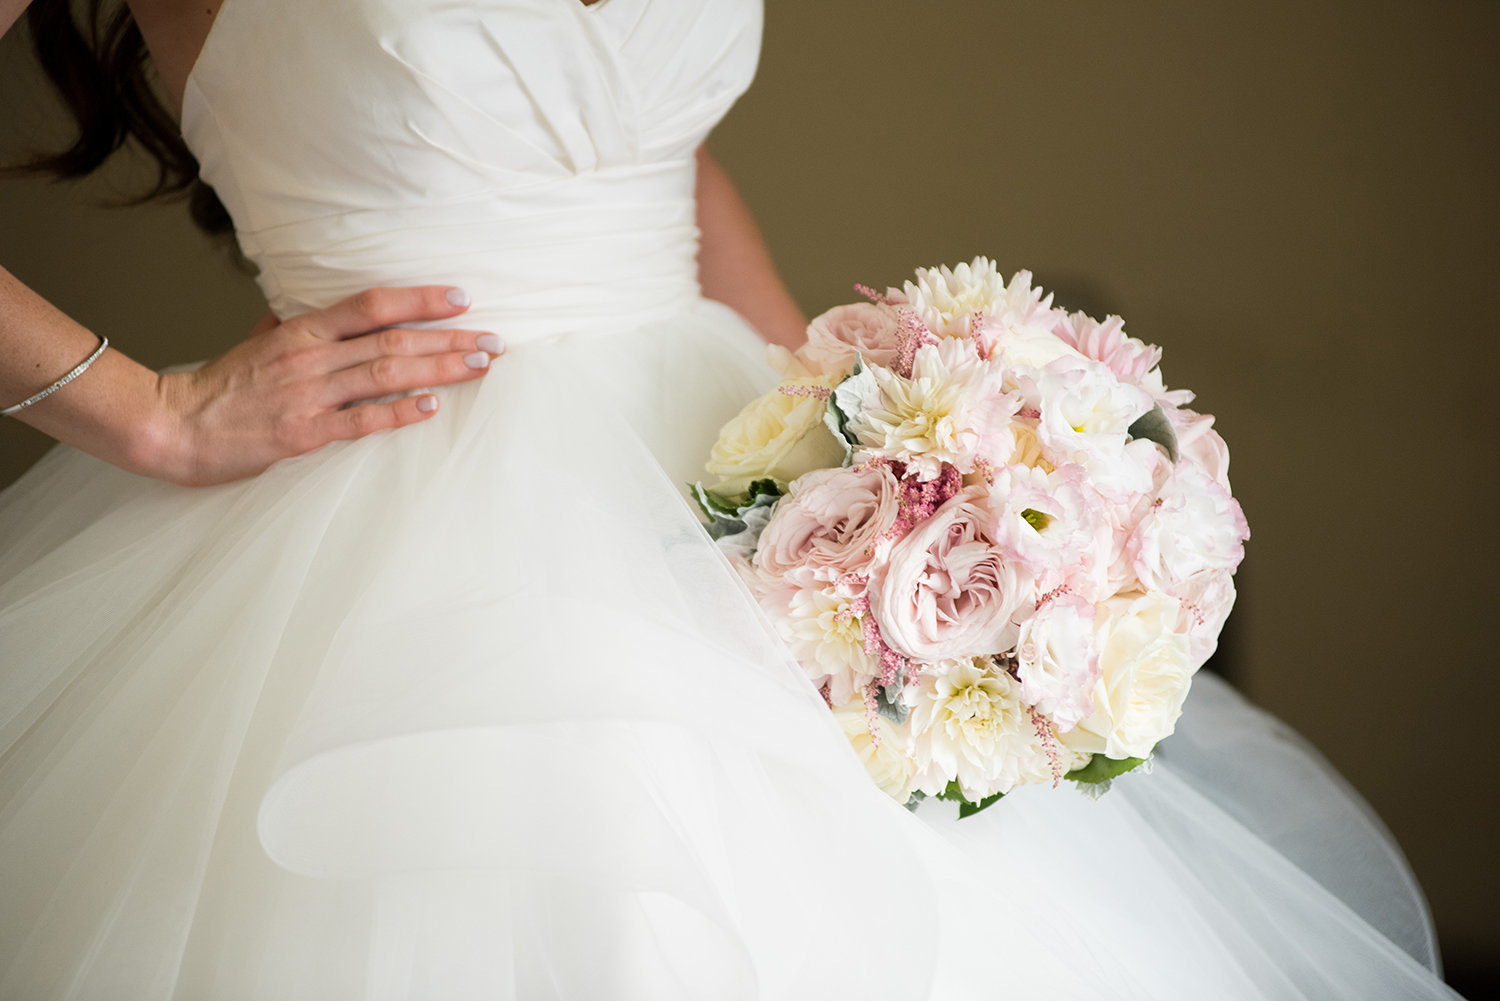 Close up detail photo of a bride's bouquet